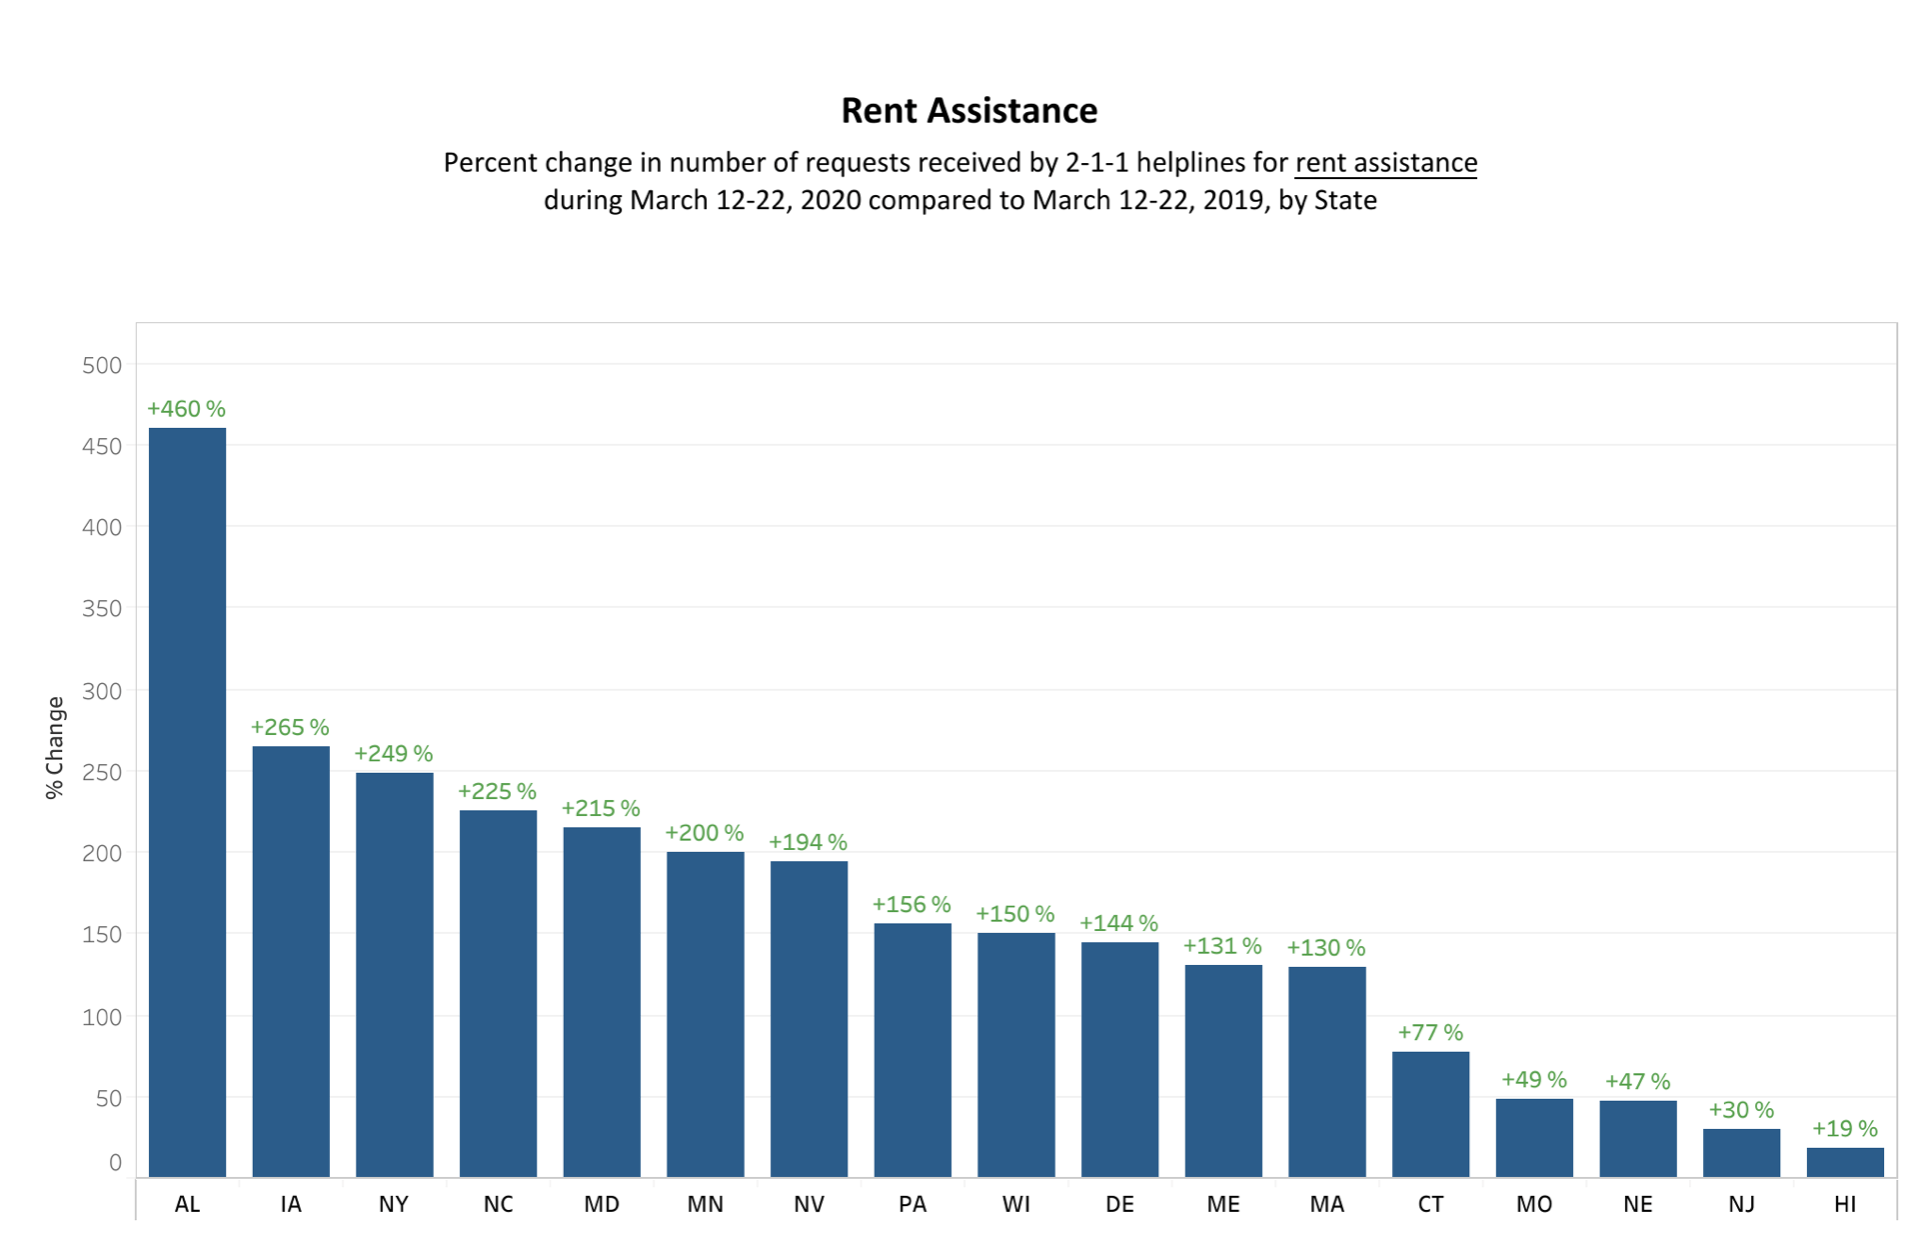 Rent assistance in states